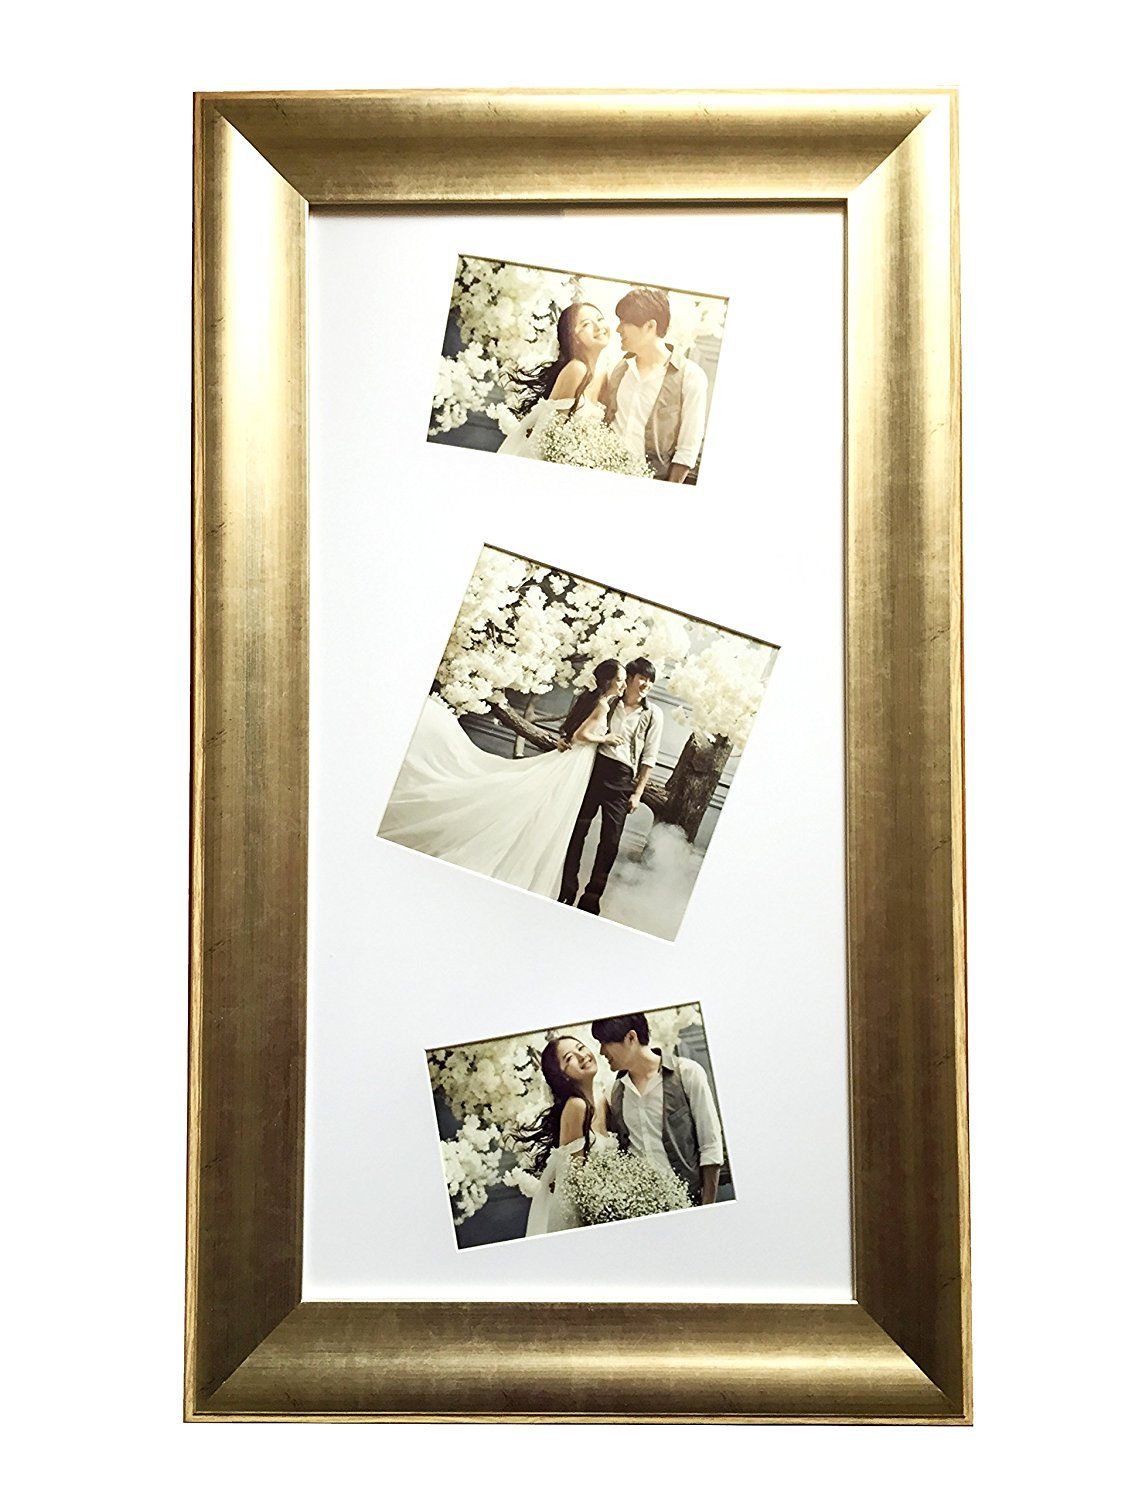 Lilian antique gold collage picture frame 14x28inch made to lilian antique gold collage picture frame 14x28inch made to displays two 5x7 inch pictures and jeuxipadfo Gallery